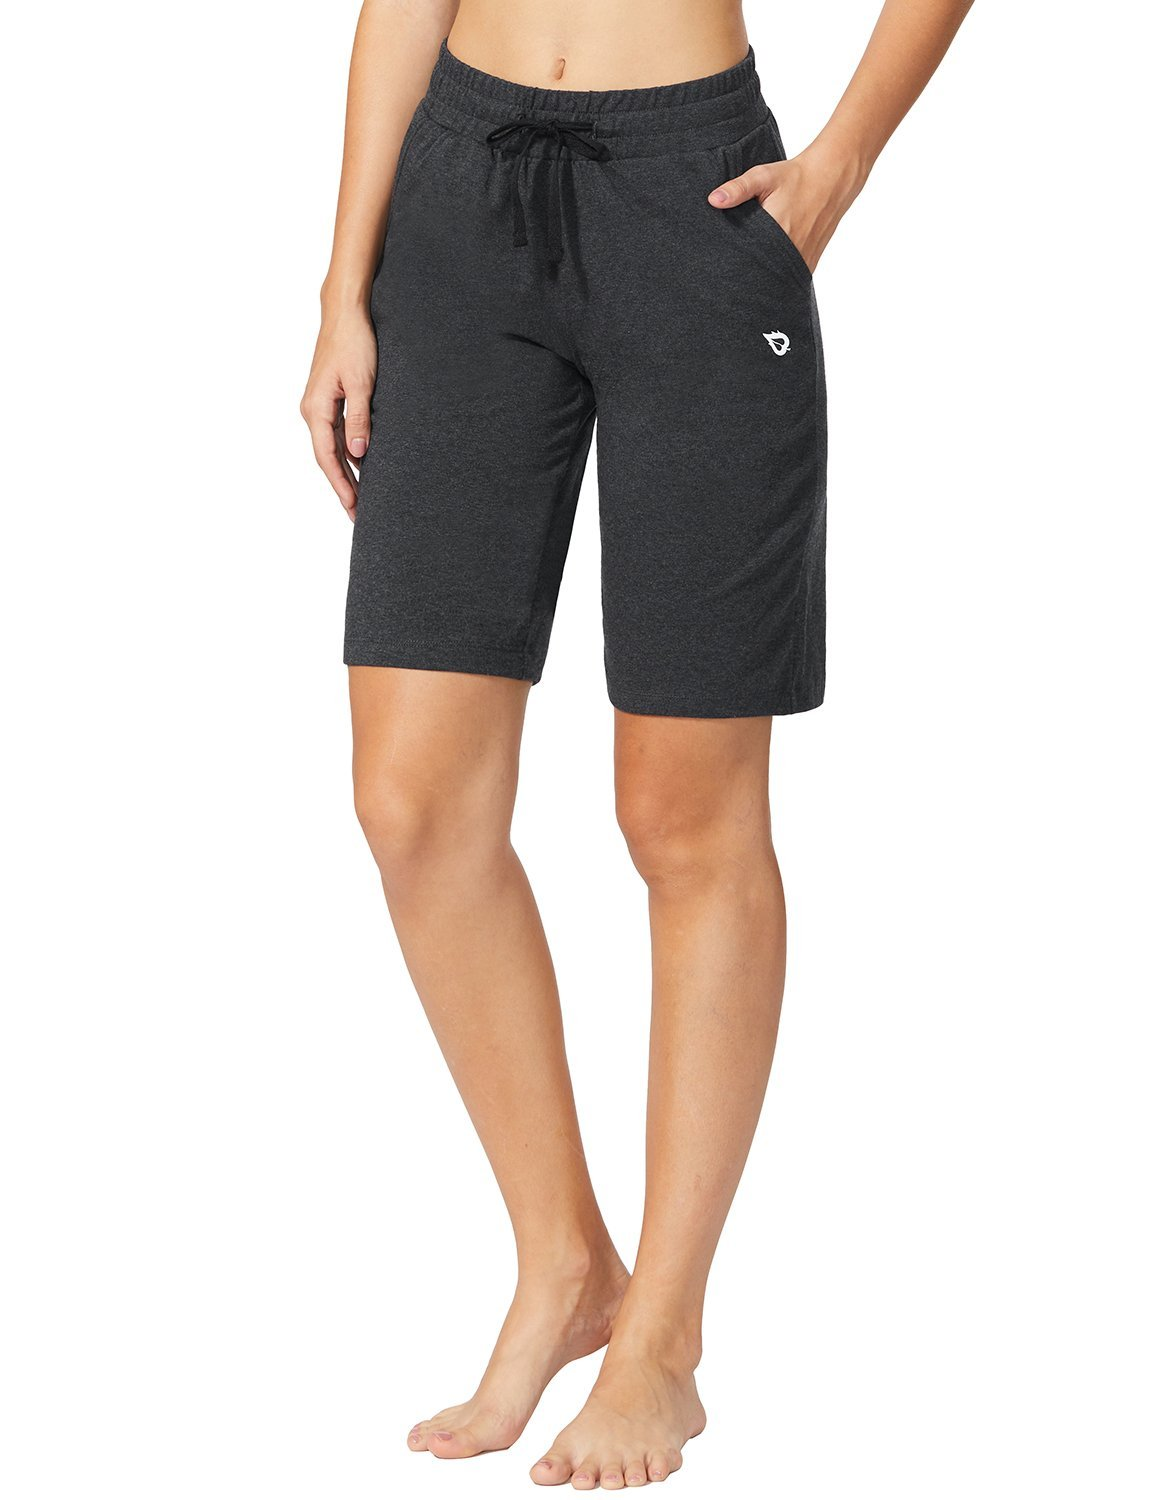 Baleaf Women's Active Yoga Lounge Bermuda Shorts with Pockets Charcoal Size L